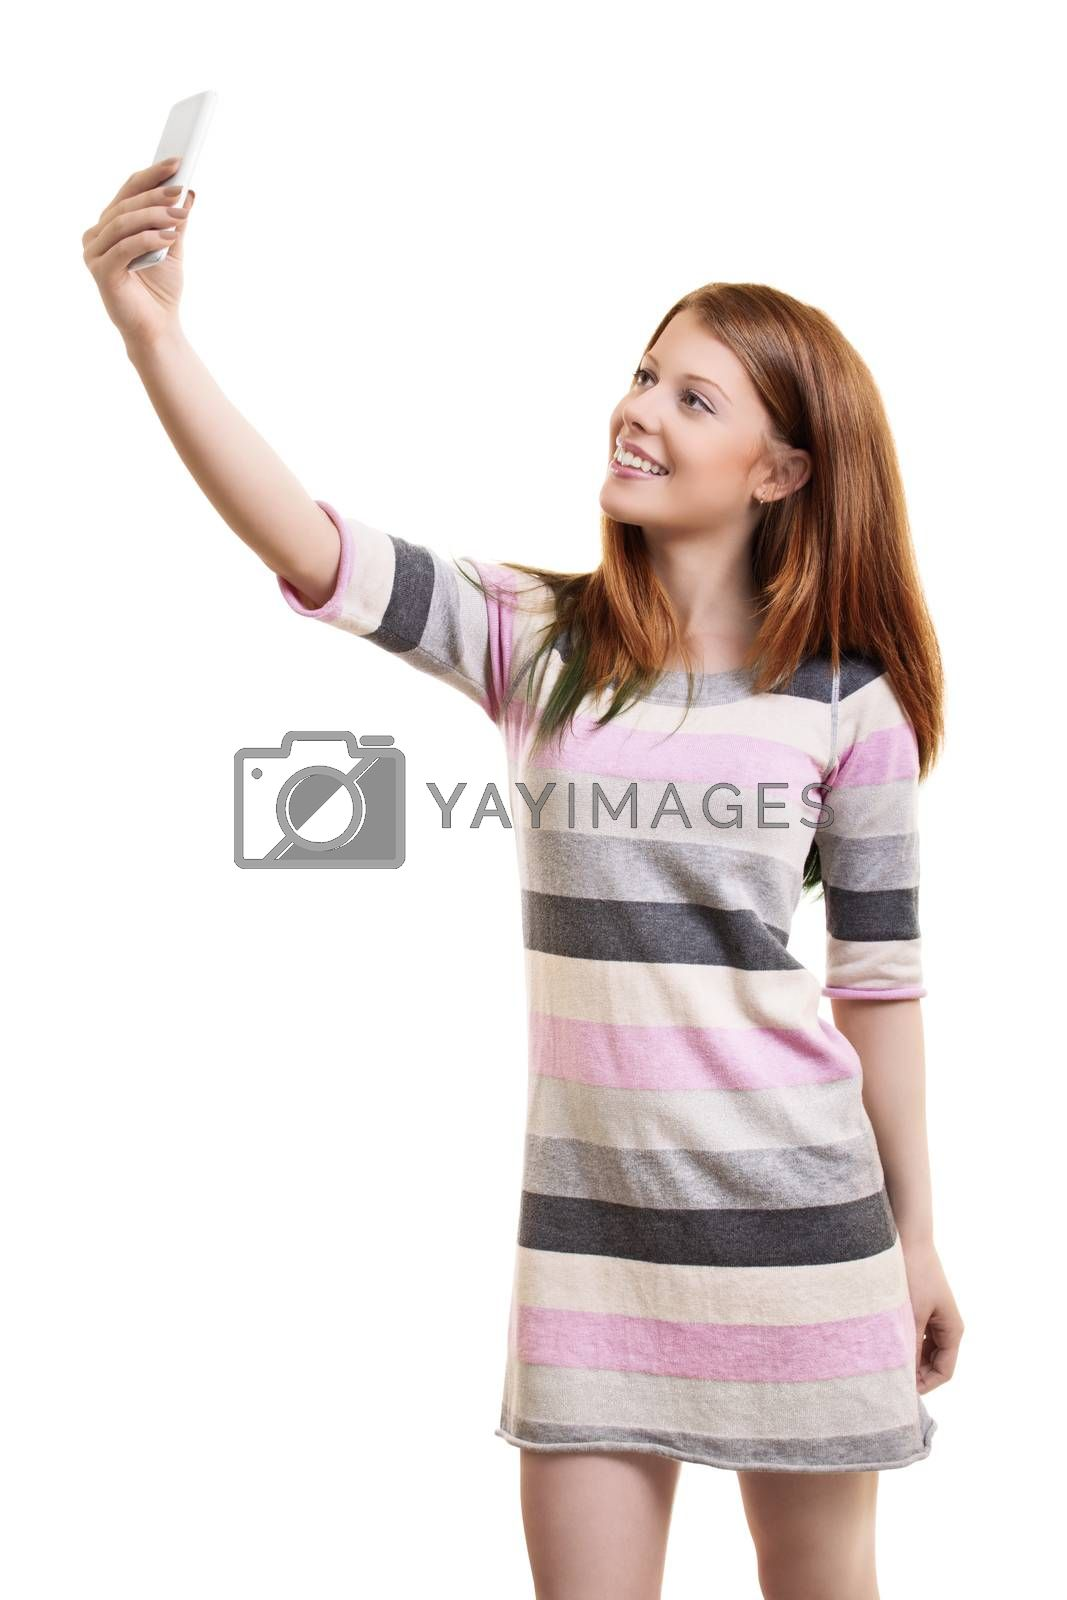 Beautiful smiling fashionable young woman in a casual dress taking a selfie with a smartphone, isolated on a white background. Full body length portrait, isolated on white background.